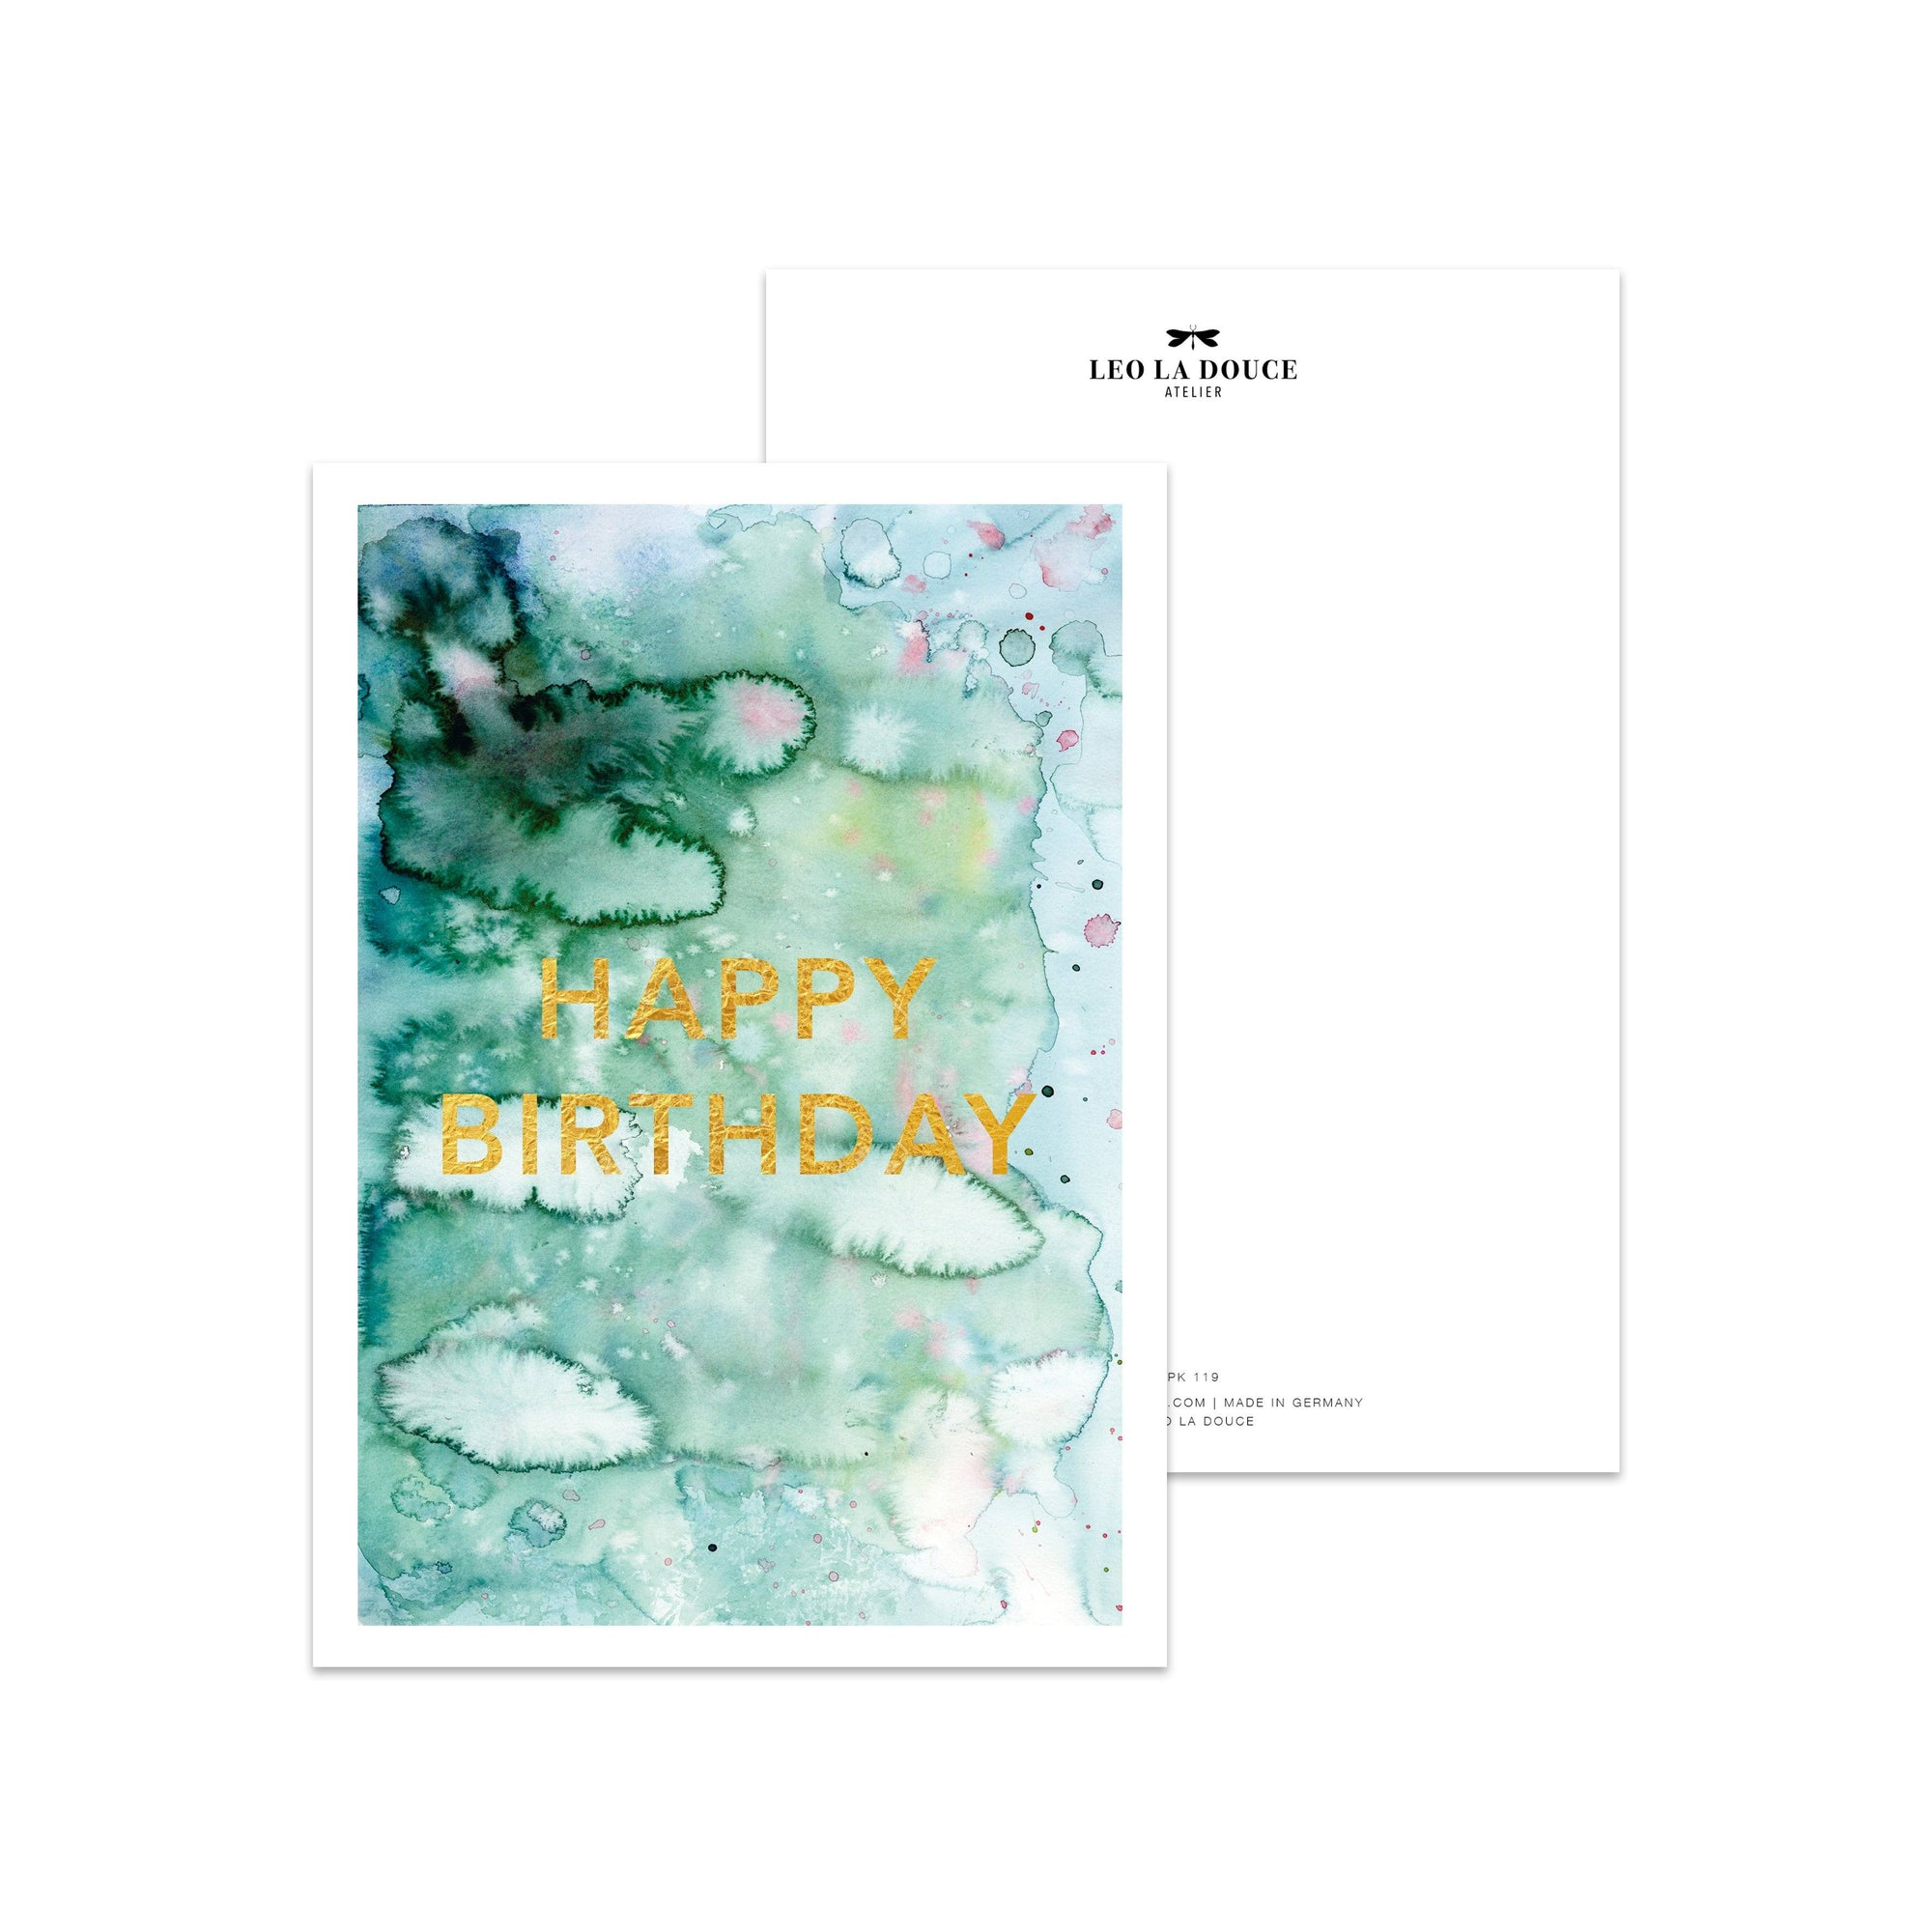 Postkarte - HAPPY BIRTHDAY GOLDFOIL Postkarte Leo la Douce